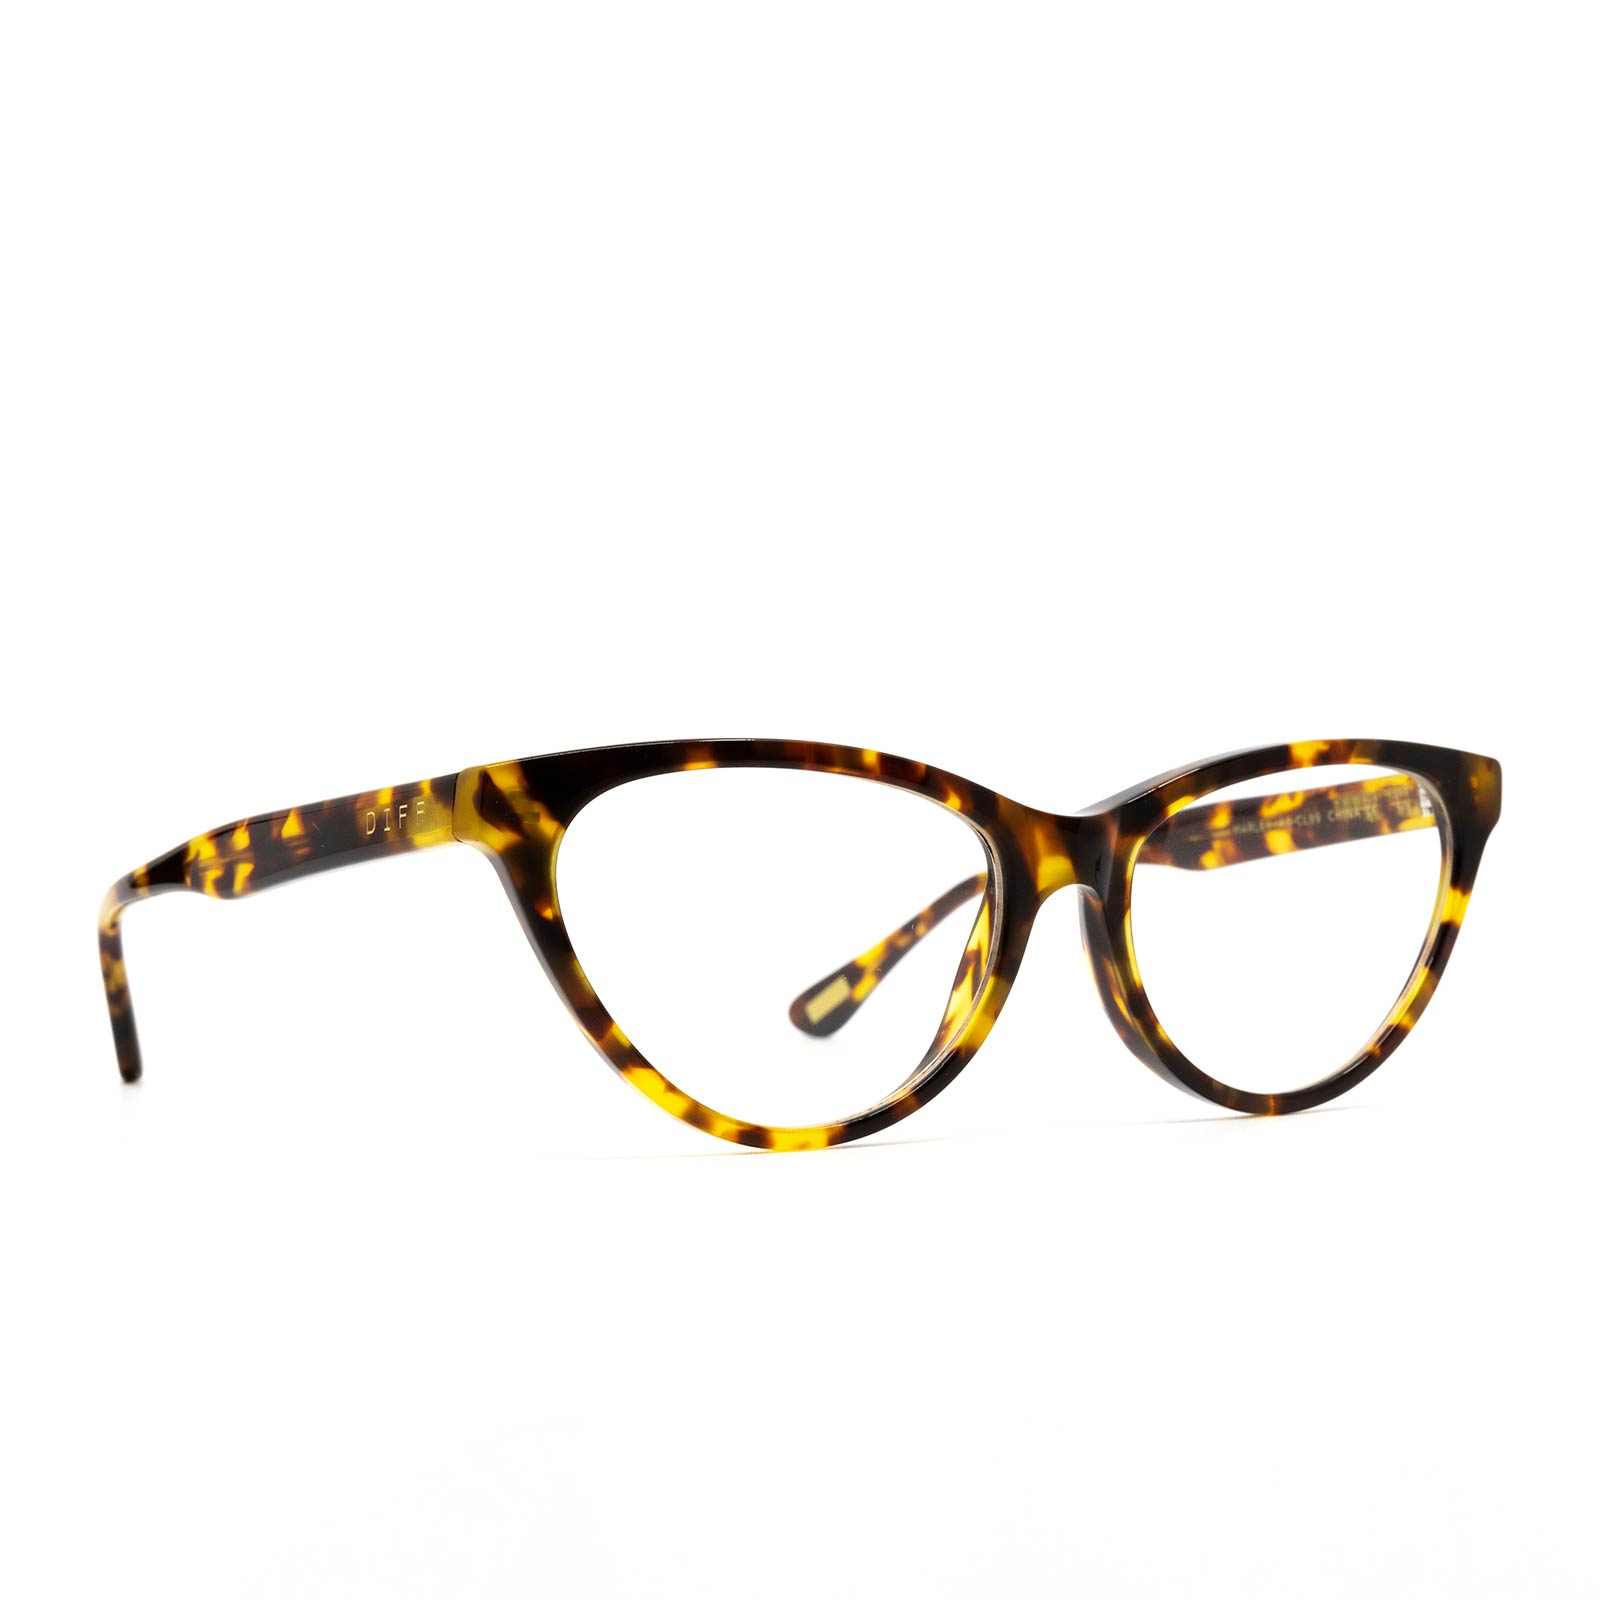 MARLEY - AMBER TORTOISE + BLUE LIGHT TECHNOLOGY CLEAR